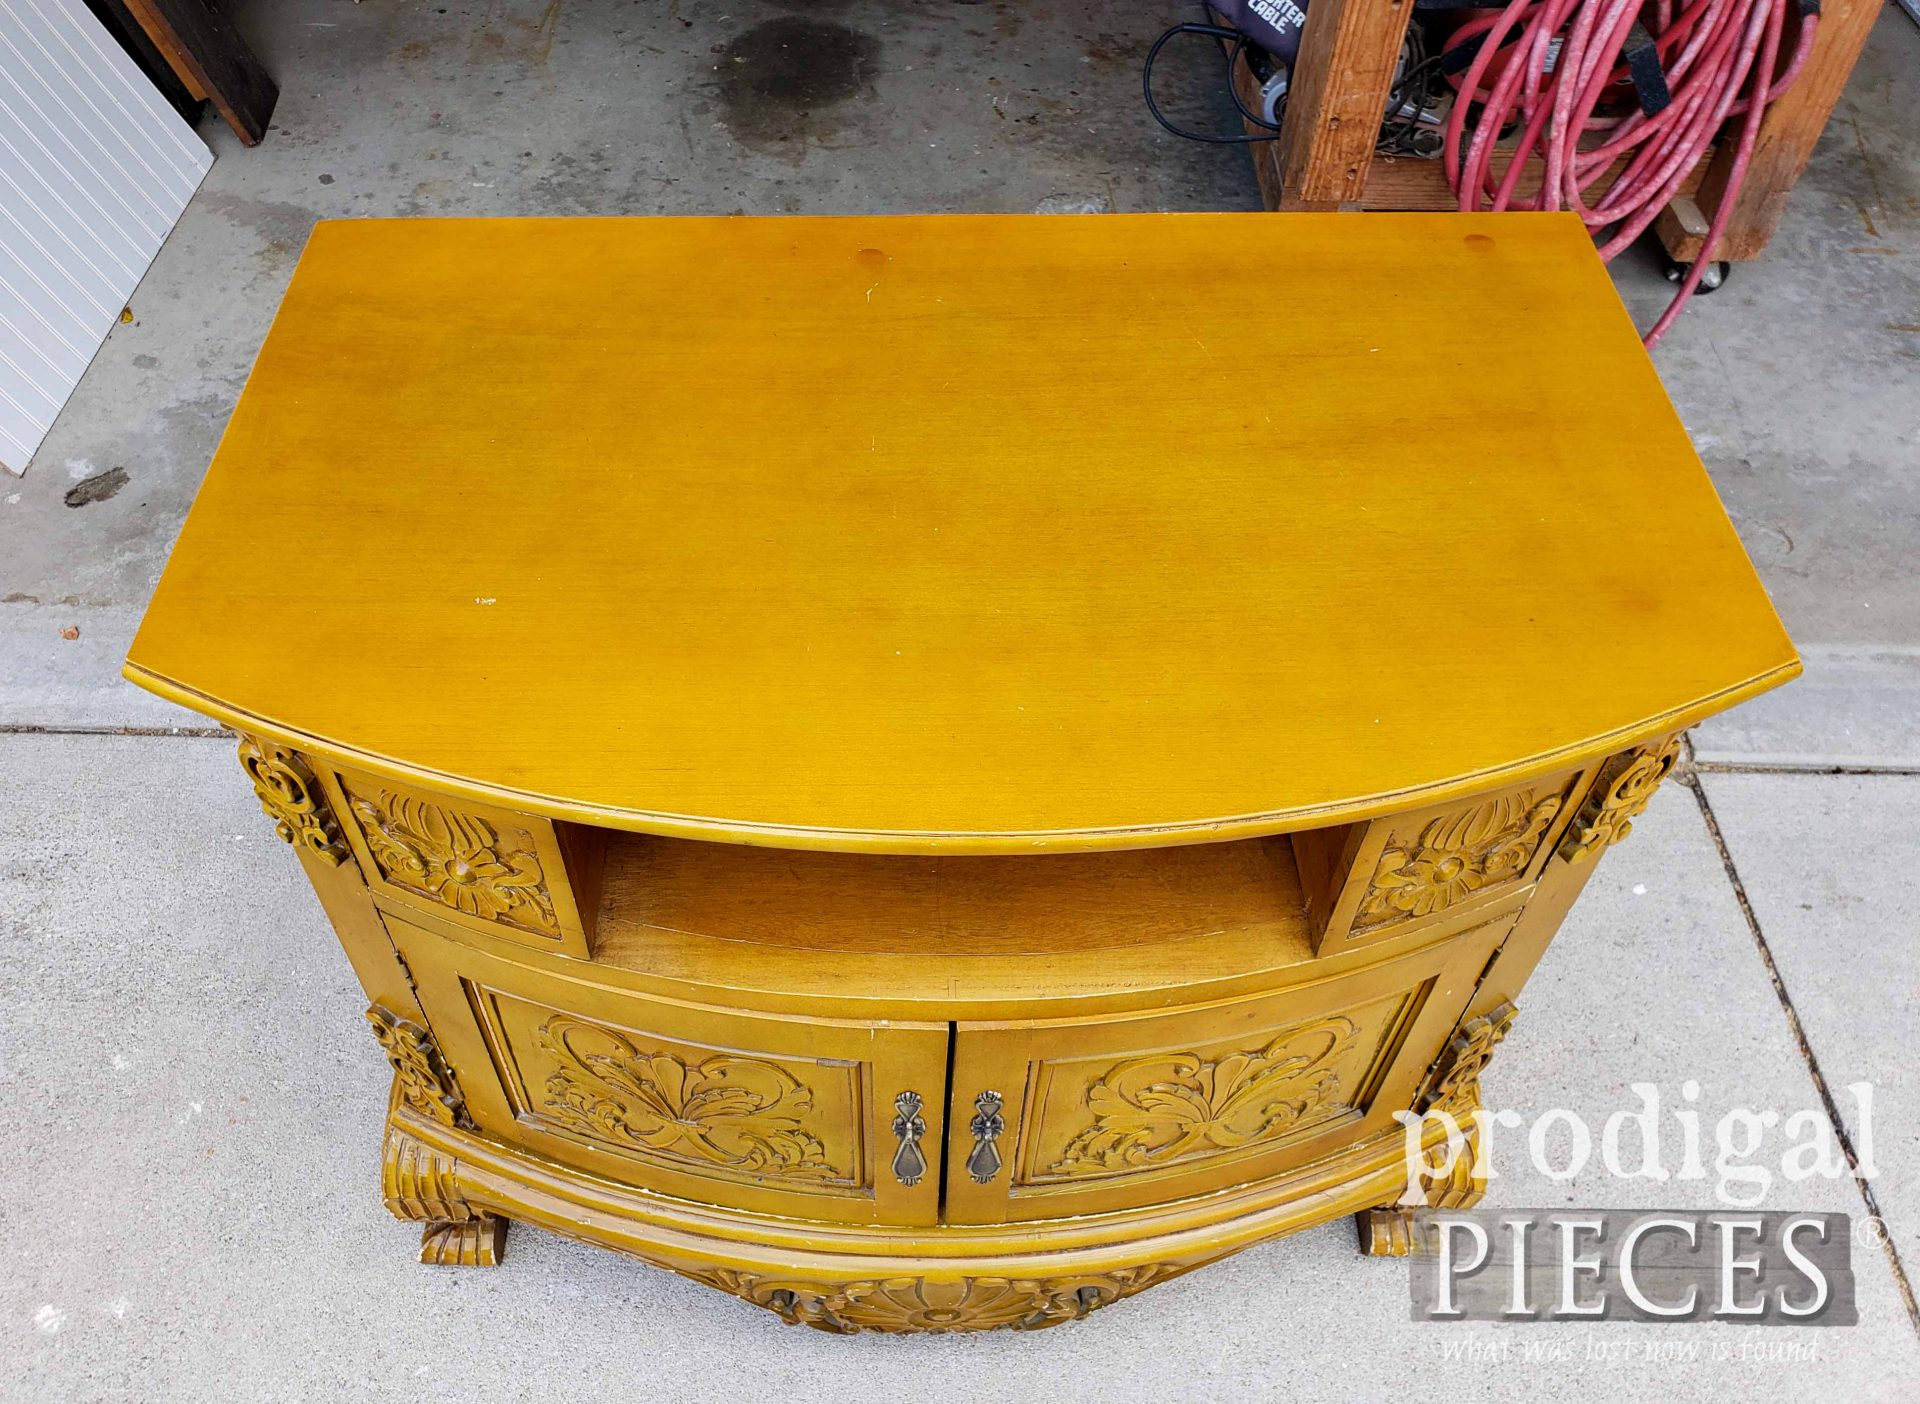 Ornate TV Stand Top | prodigalpieces.com